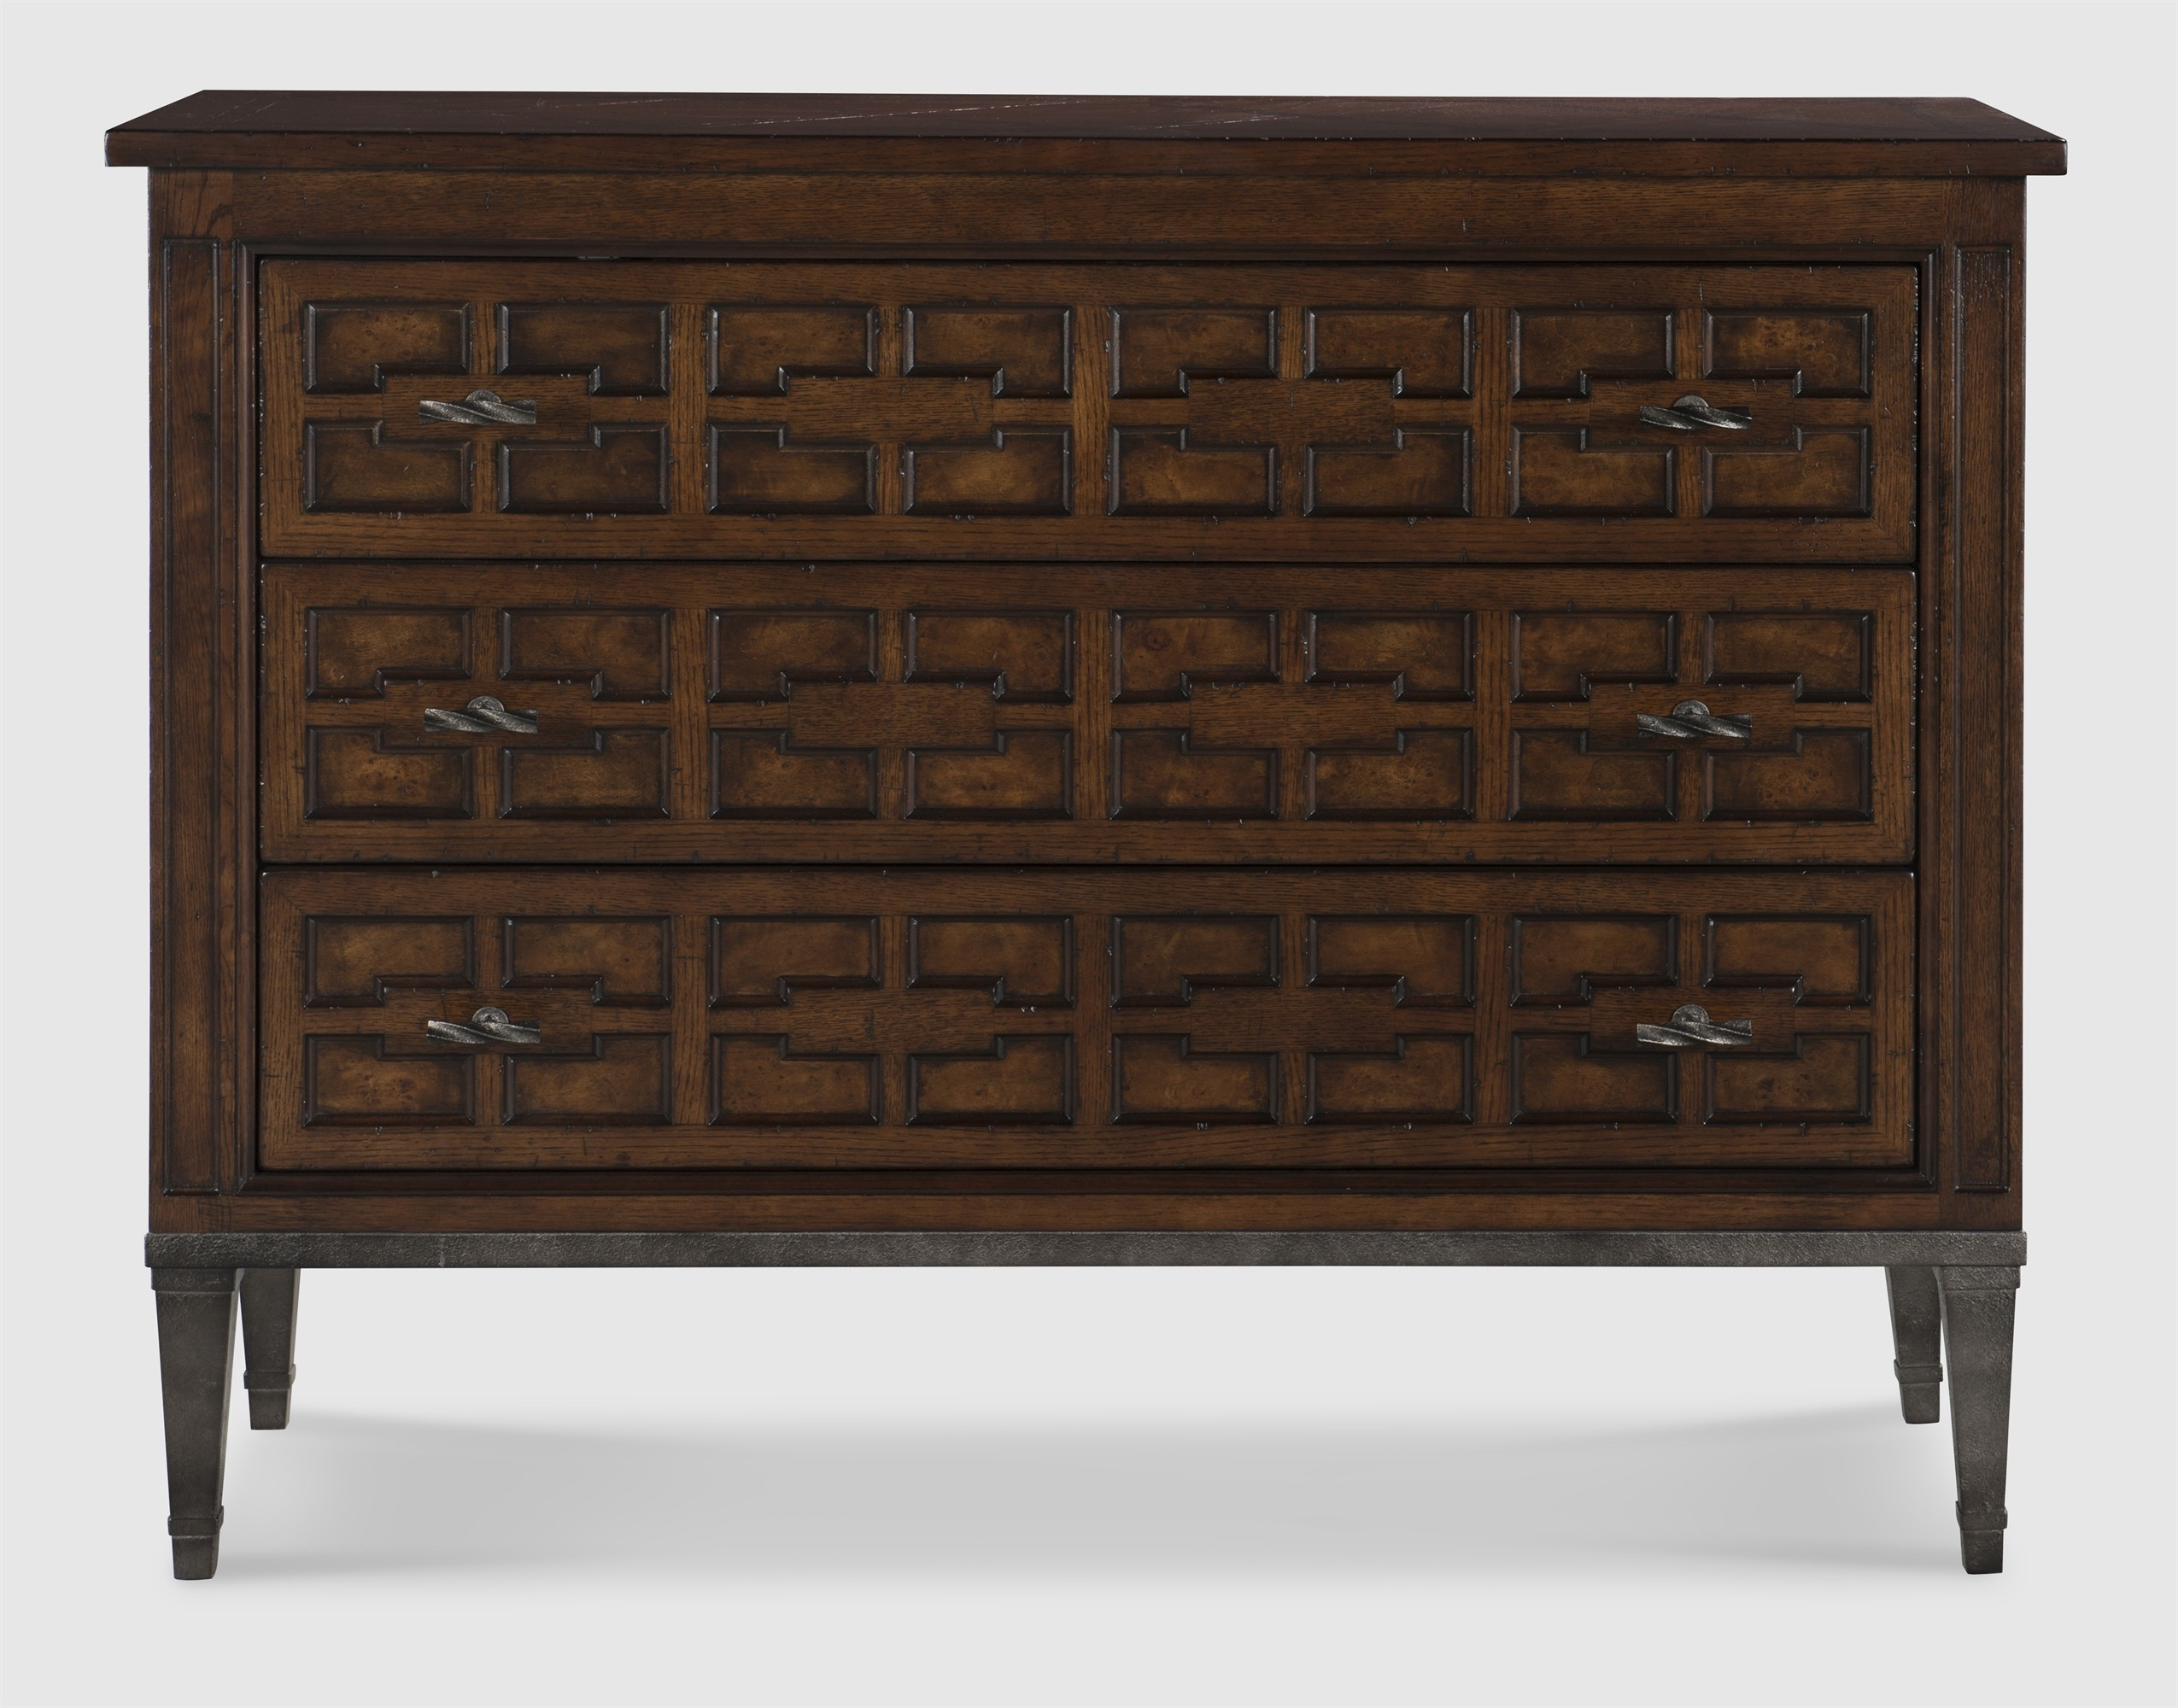 Casa Bella Burl Drawer Chest - Sierra Finish